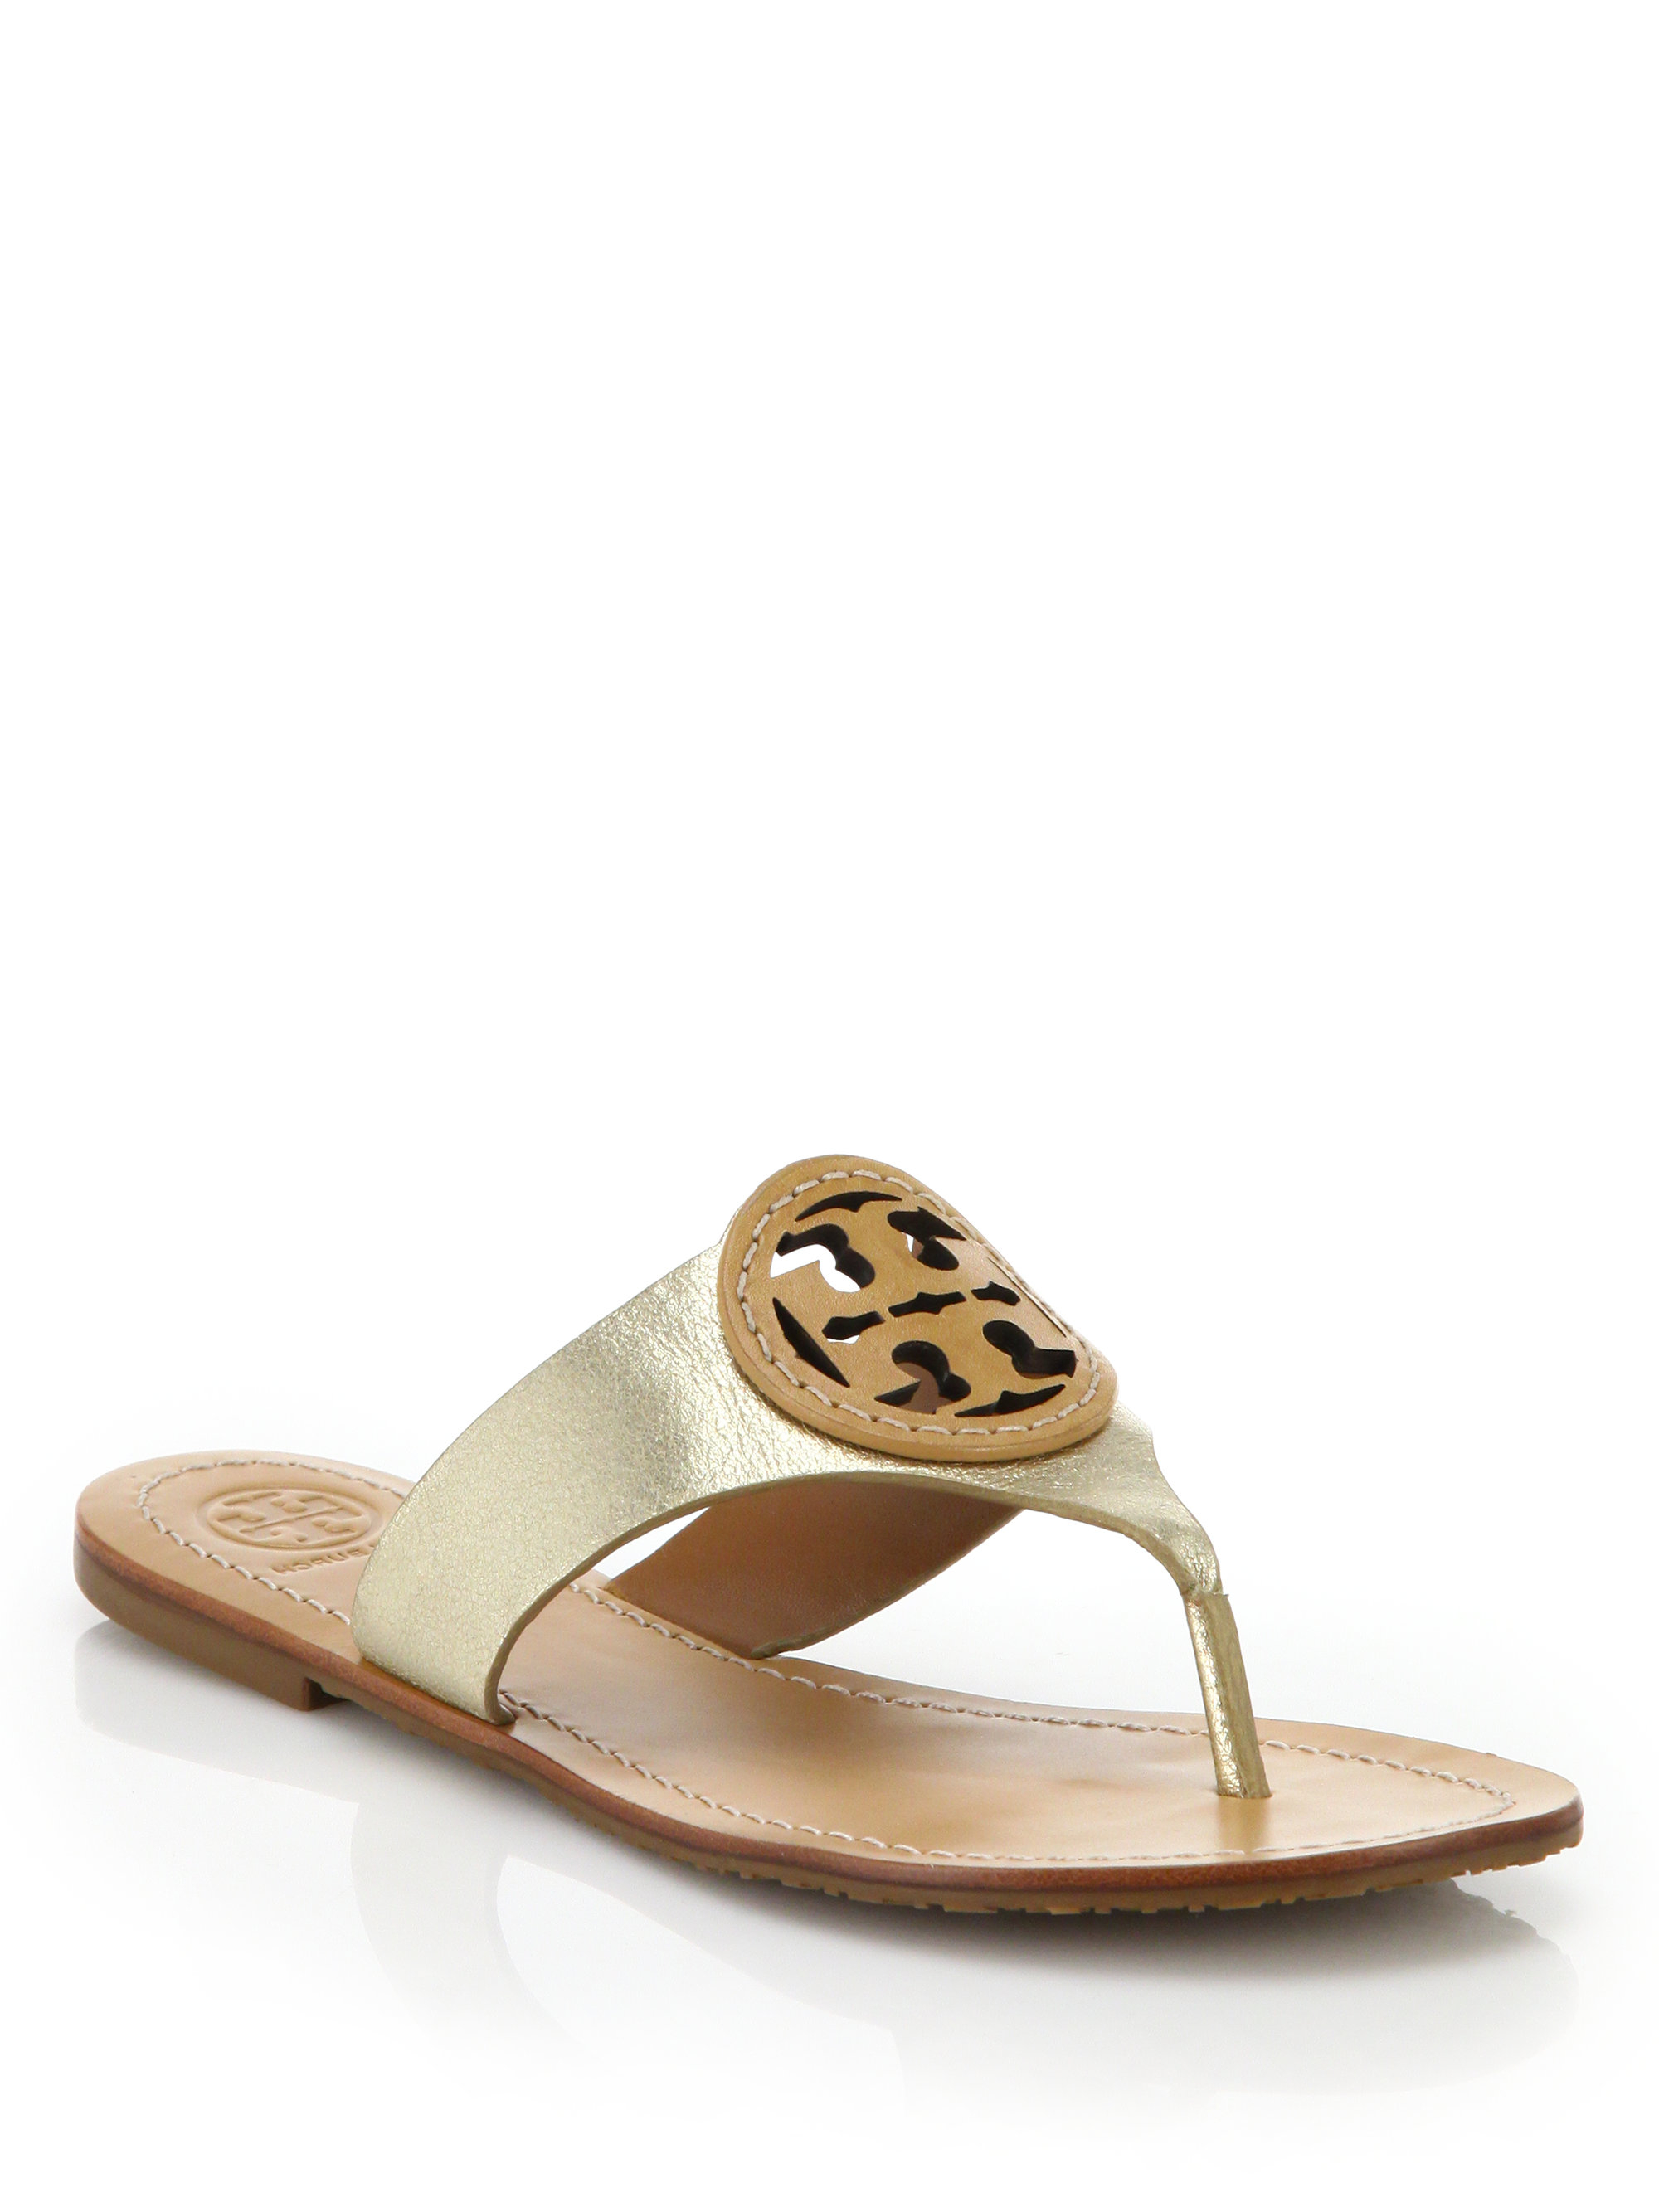 f51a5cd36 Lyst - Tory Burch Louisa Metallic Leather Thong Sandals in Metallic